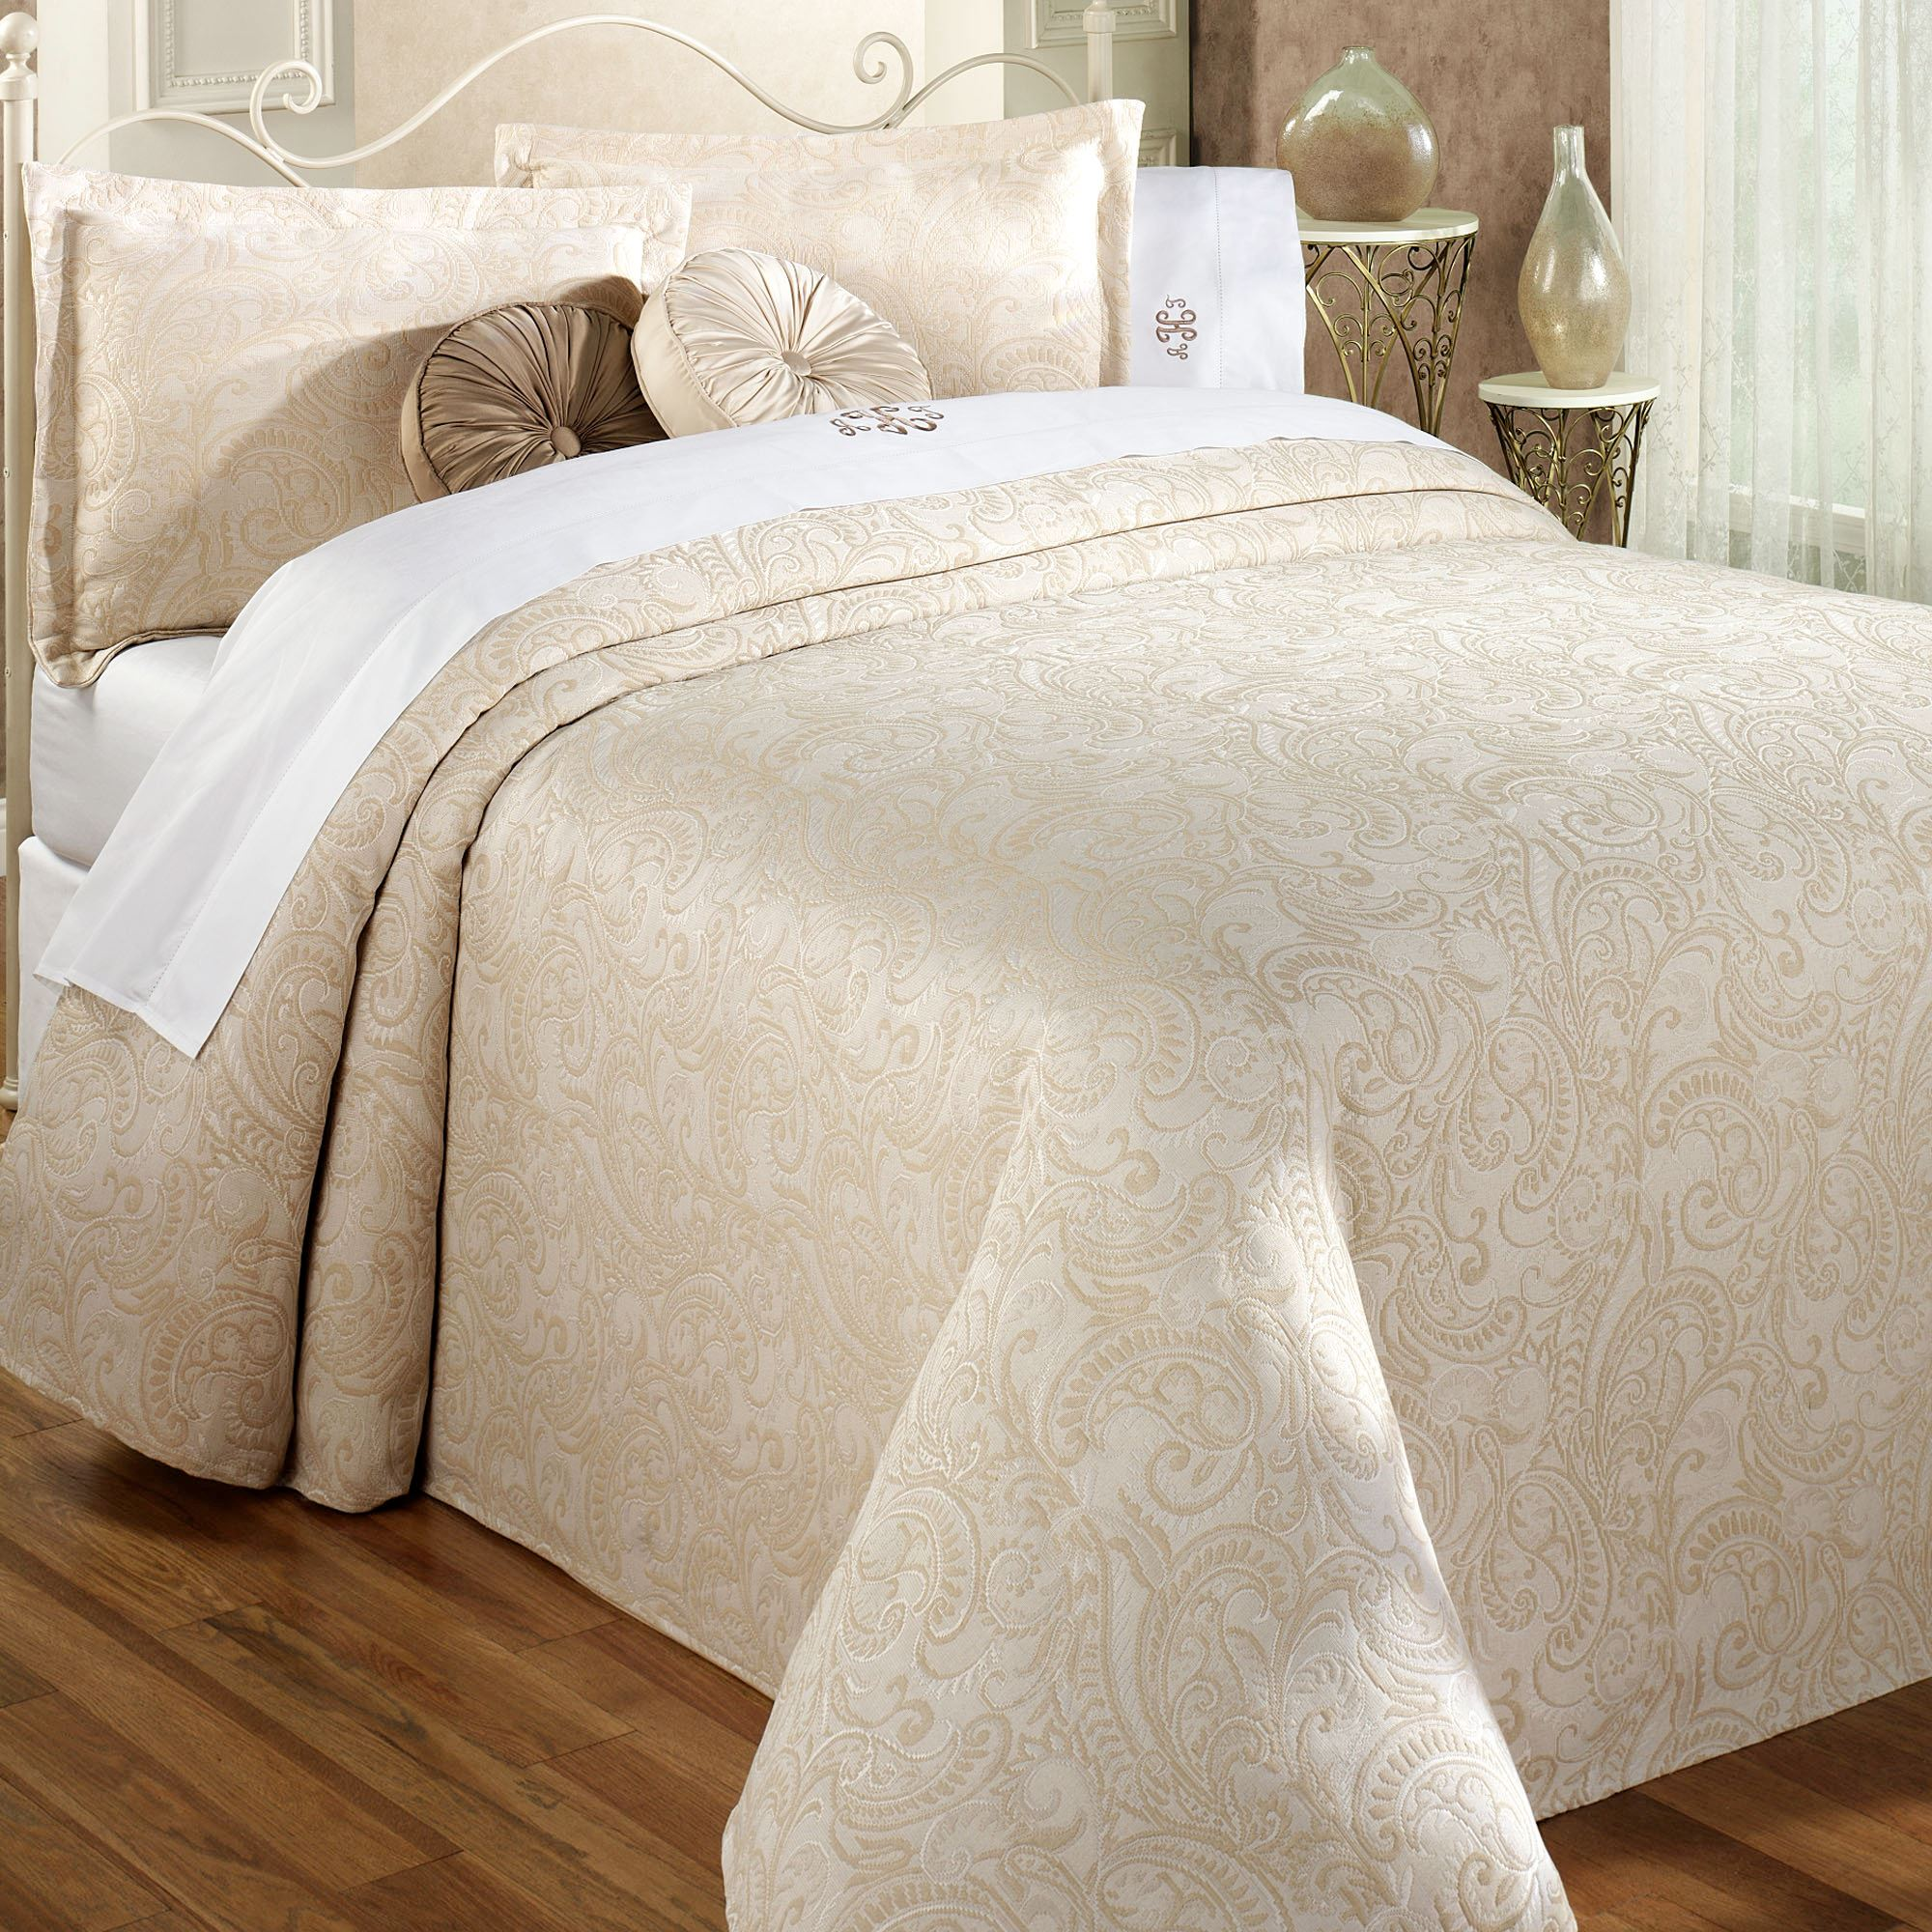 Matelasse Coverlet King | Matelasse Bedspreads | Chenille Bedspread Queen Size